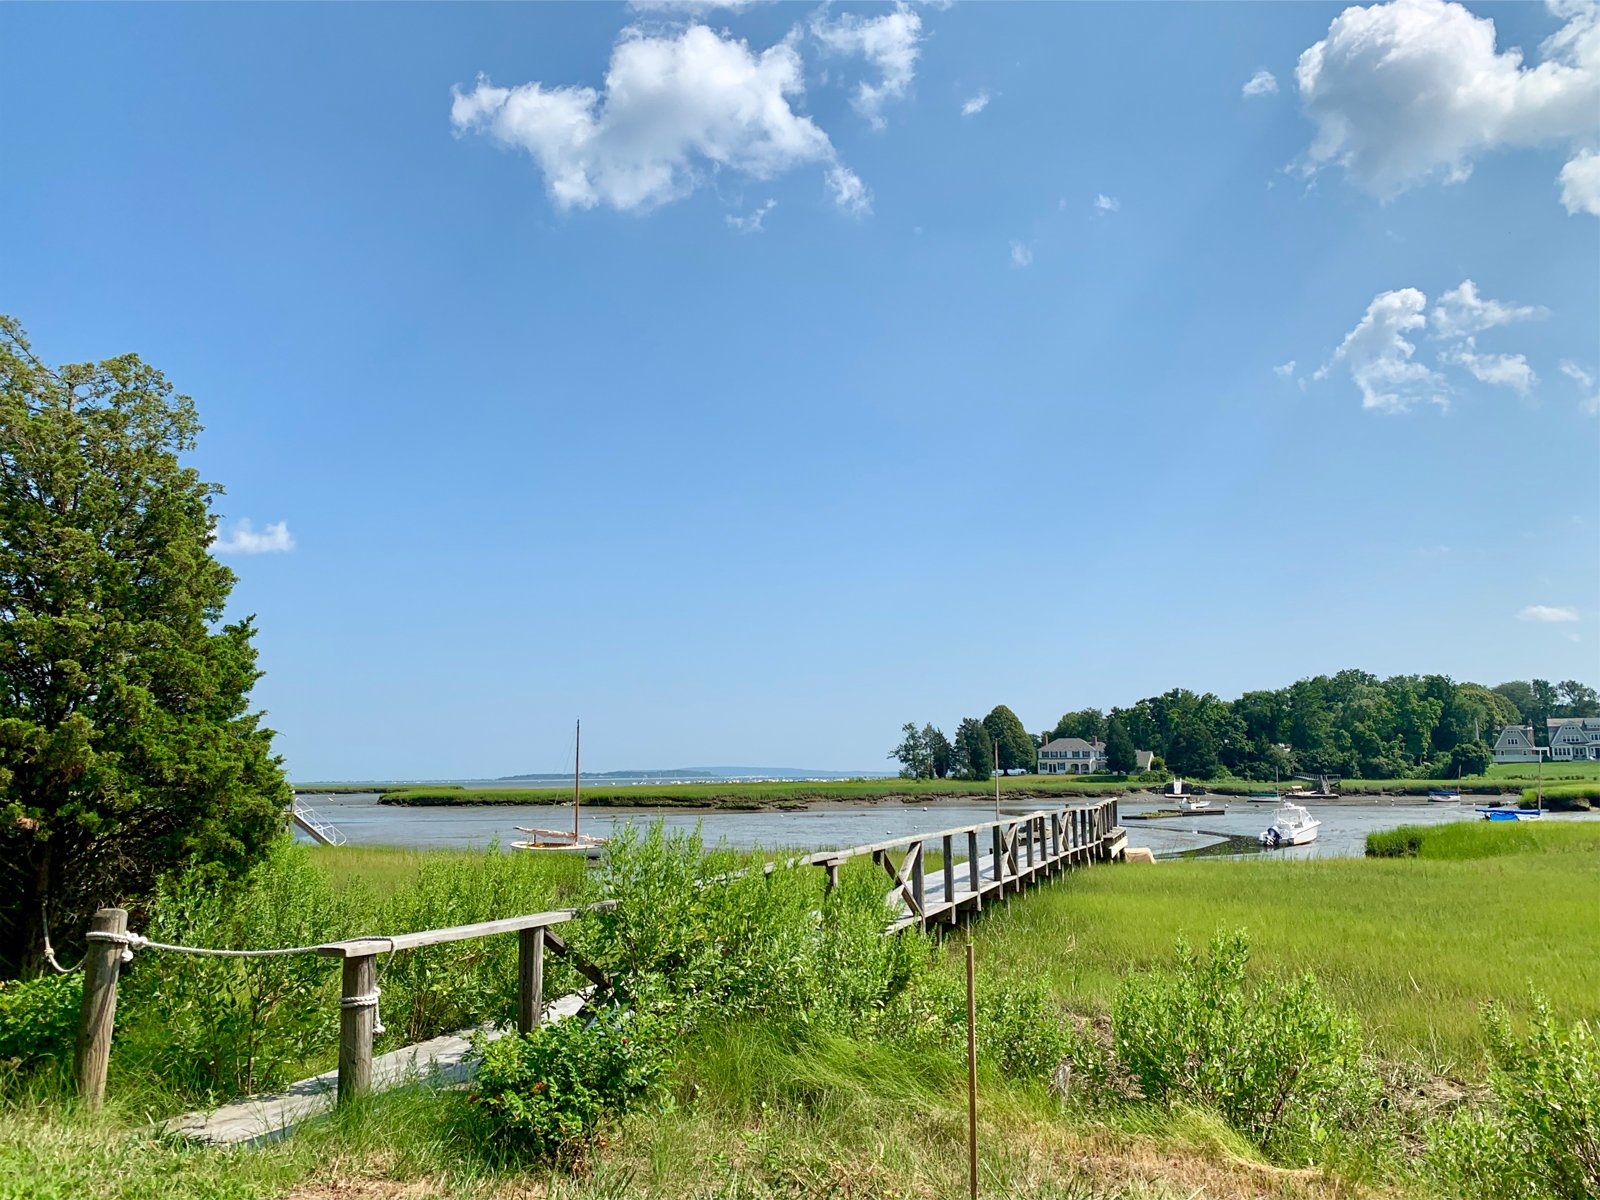 a dock extending into the water in the summer in Duxbury, Massachusetts